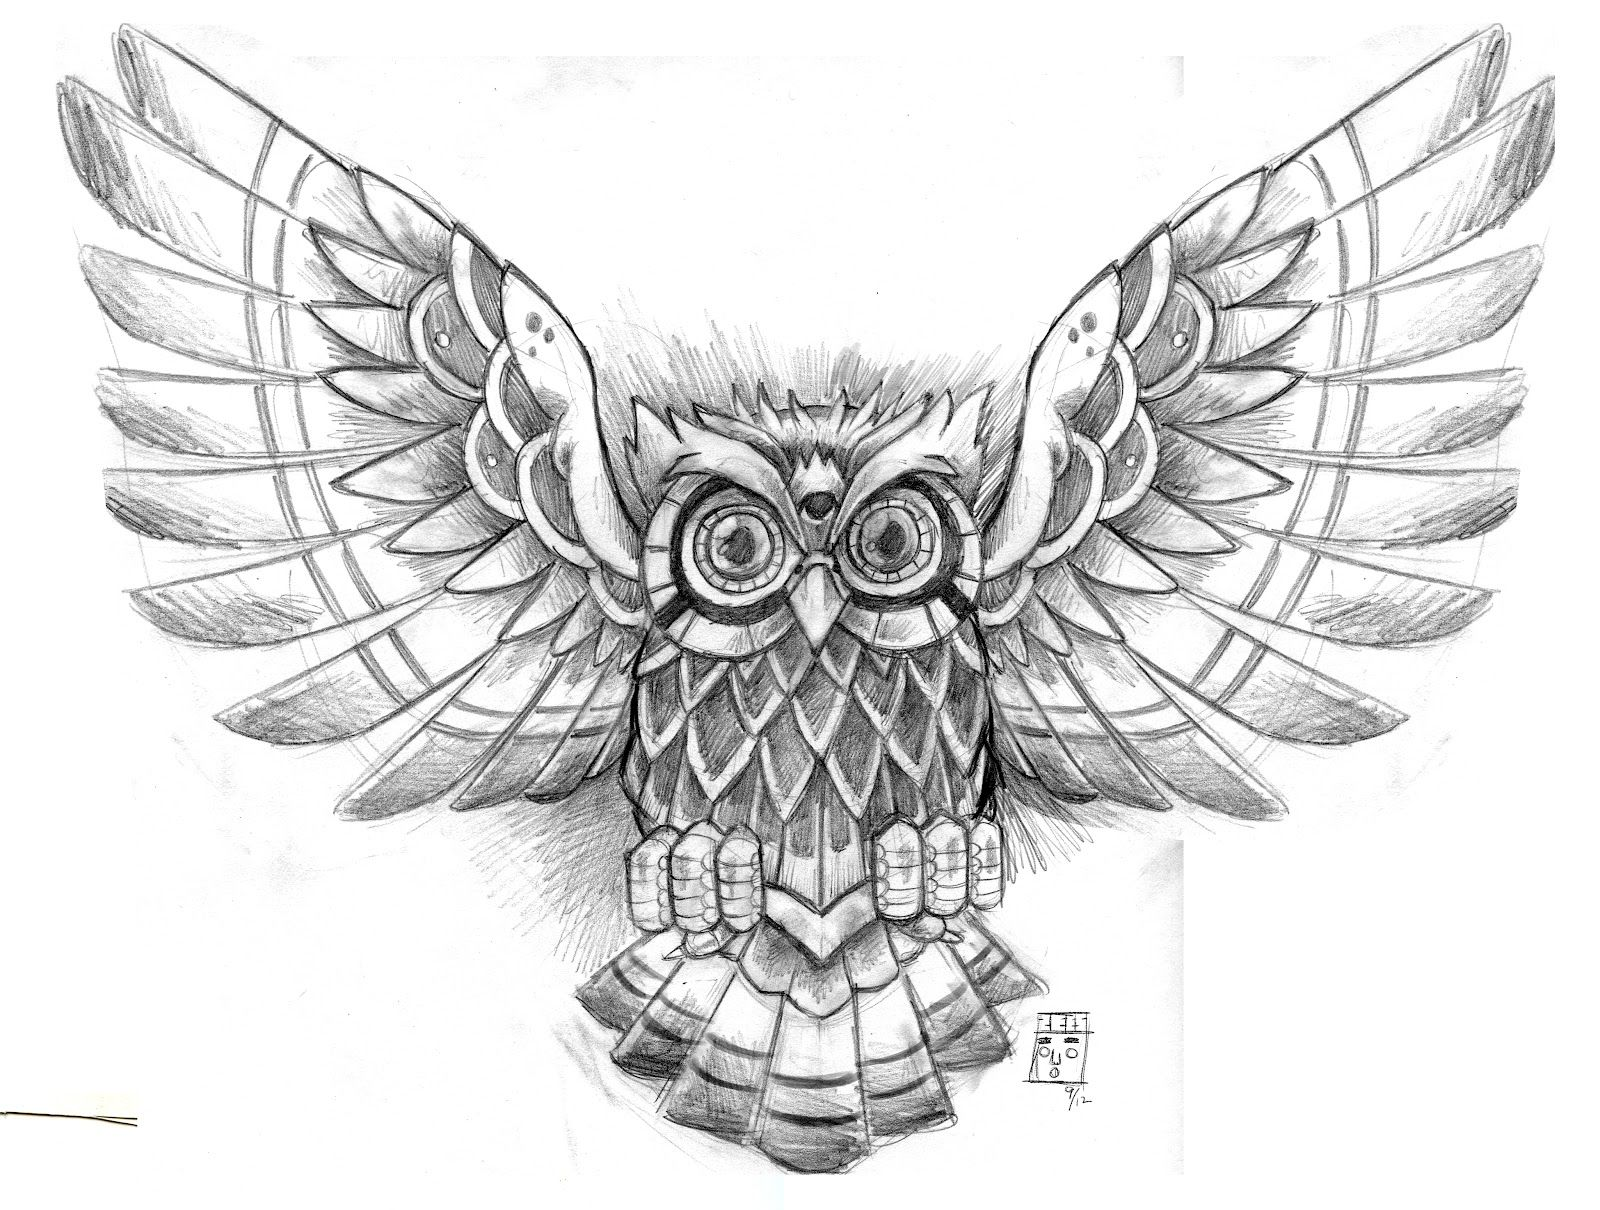 Owl Tattoo Designs The Body Is A Canvas Chest Tattoo Drawings Owl Tattoo Drawings Owl Tattoo Design